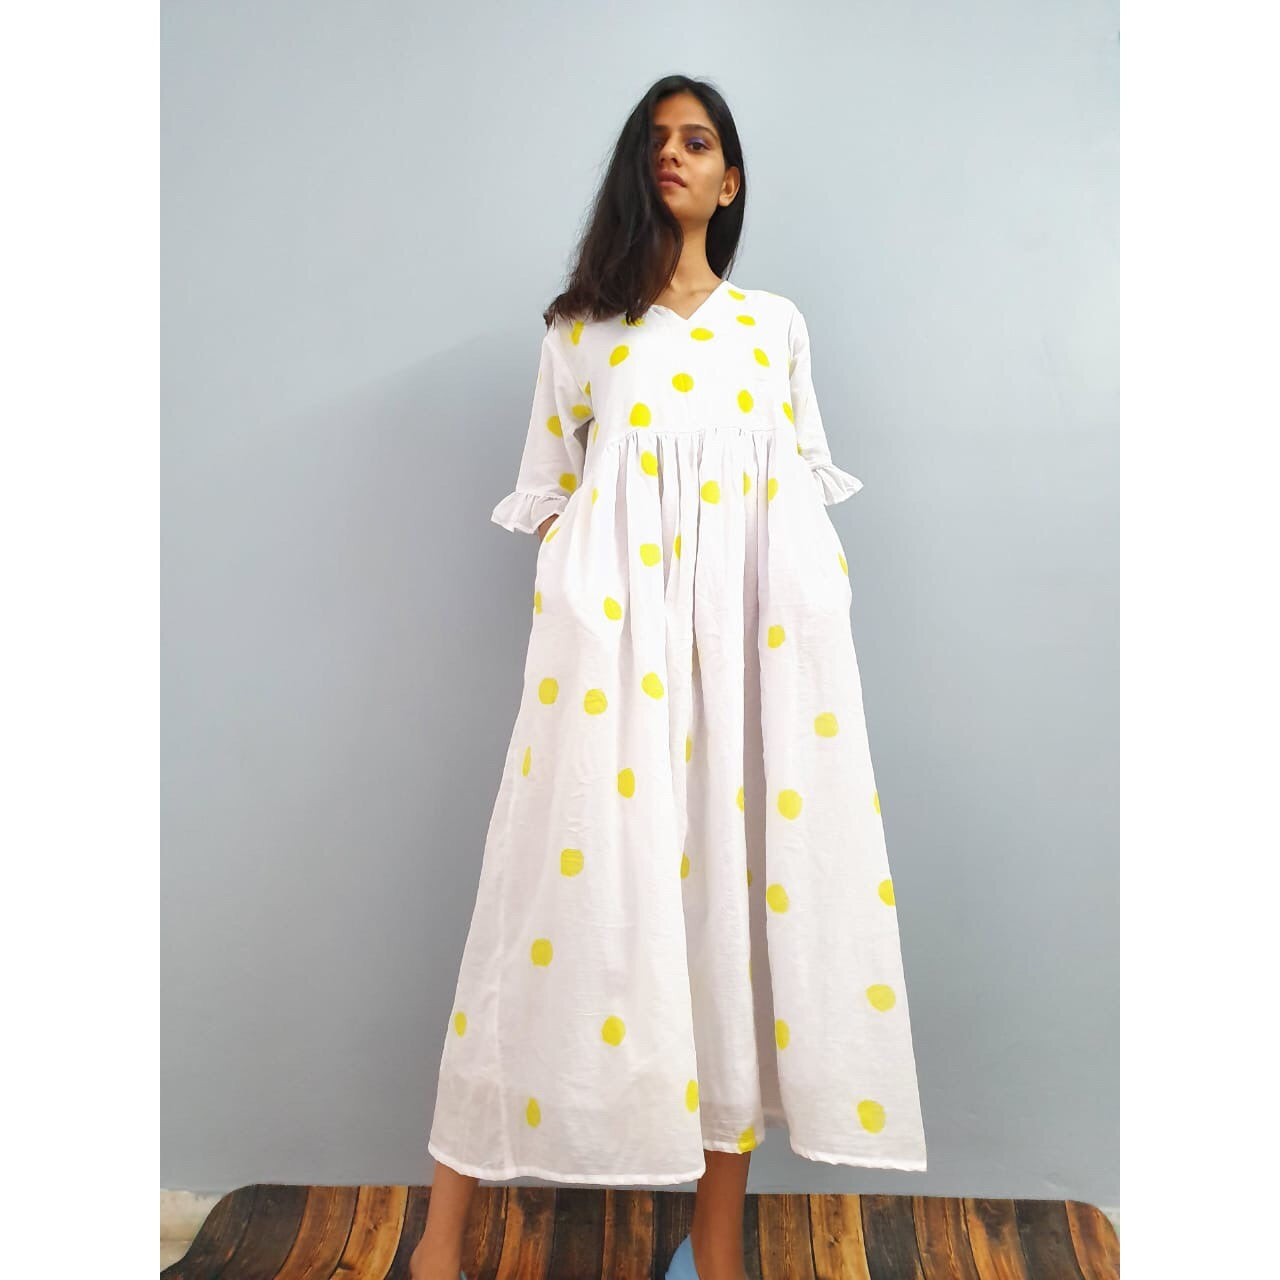 Lemon yellow polka dot maxi